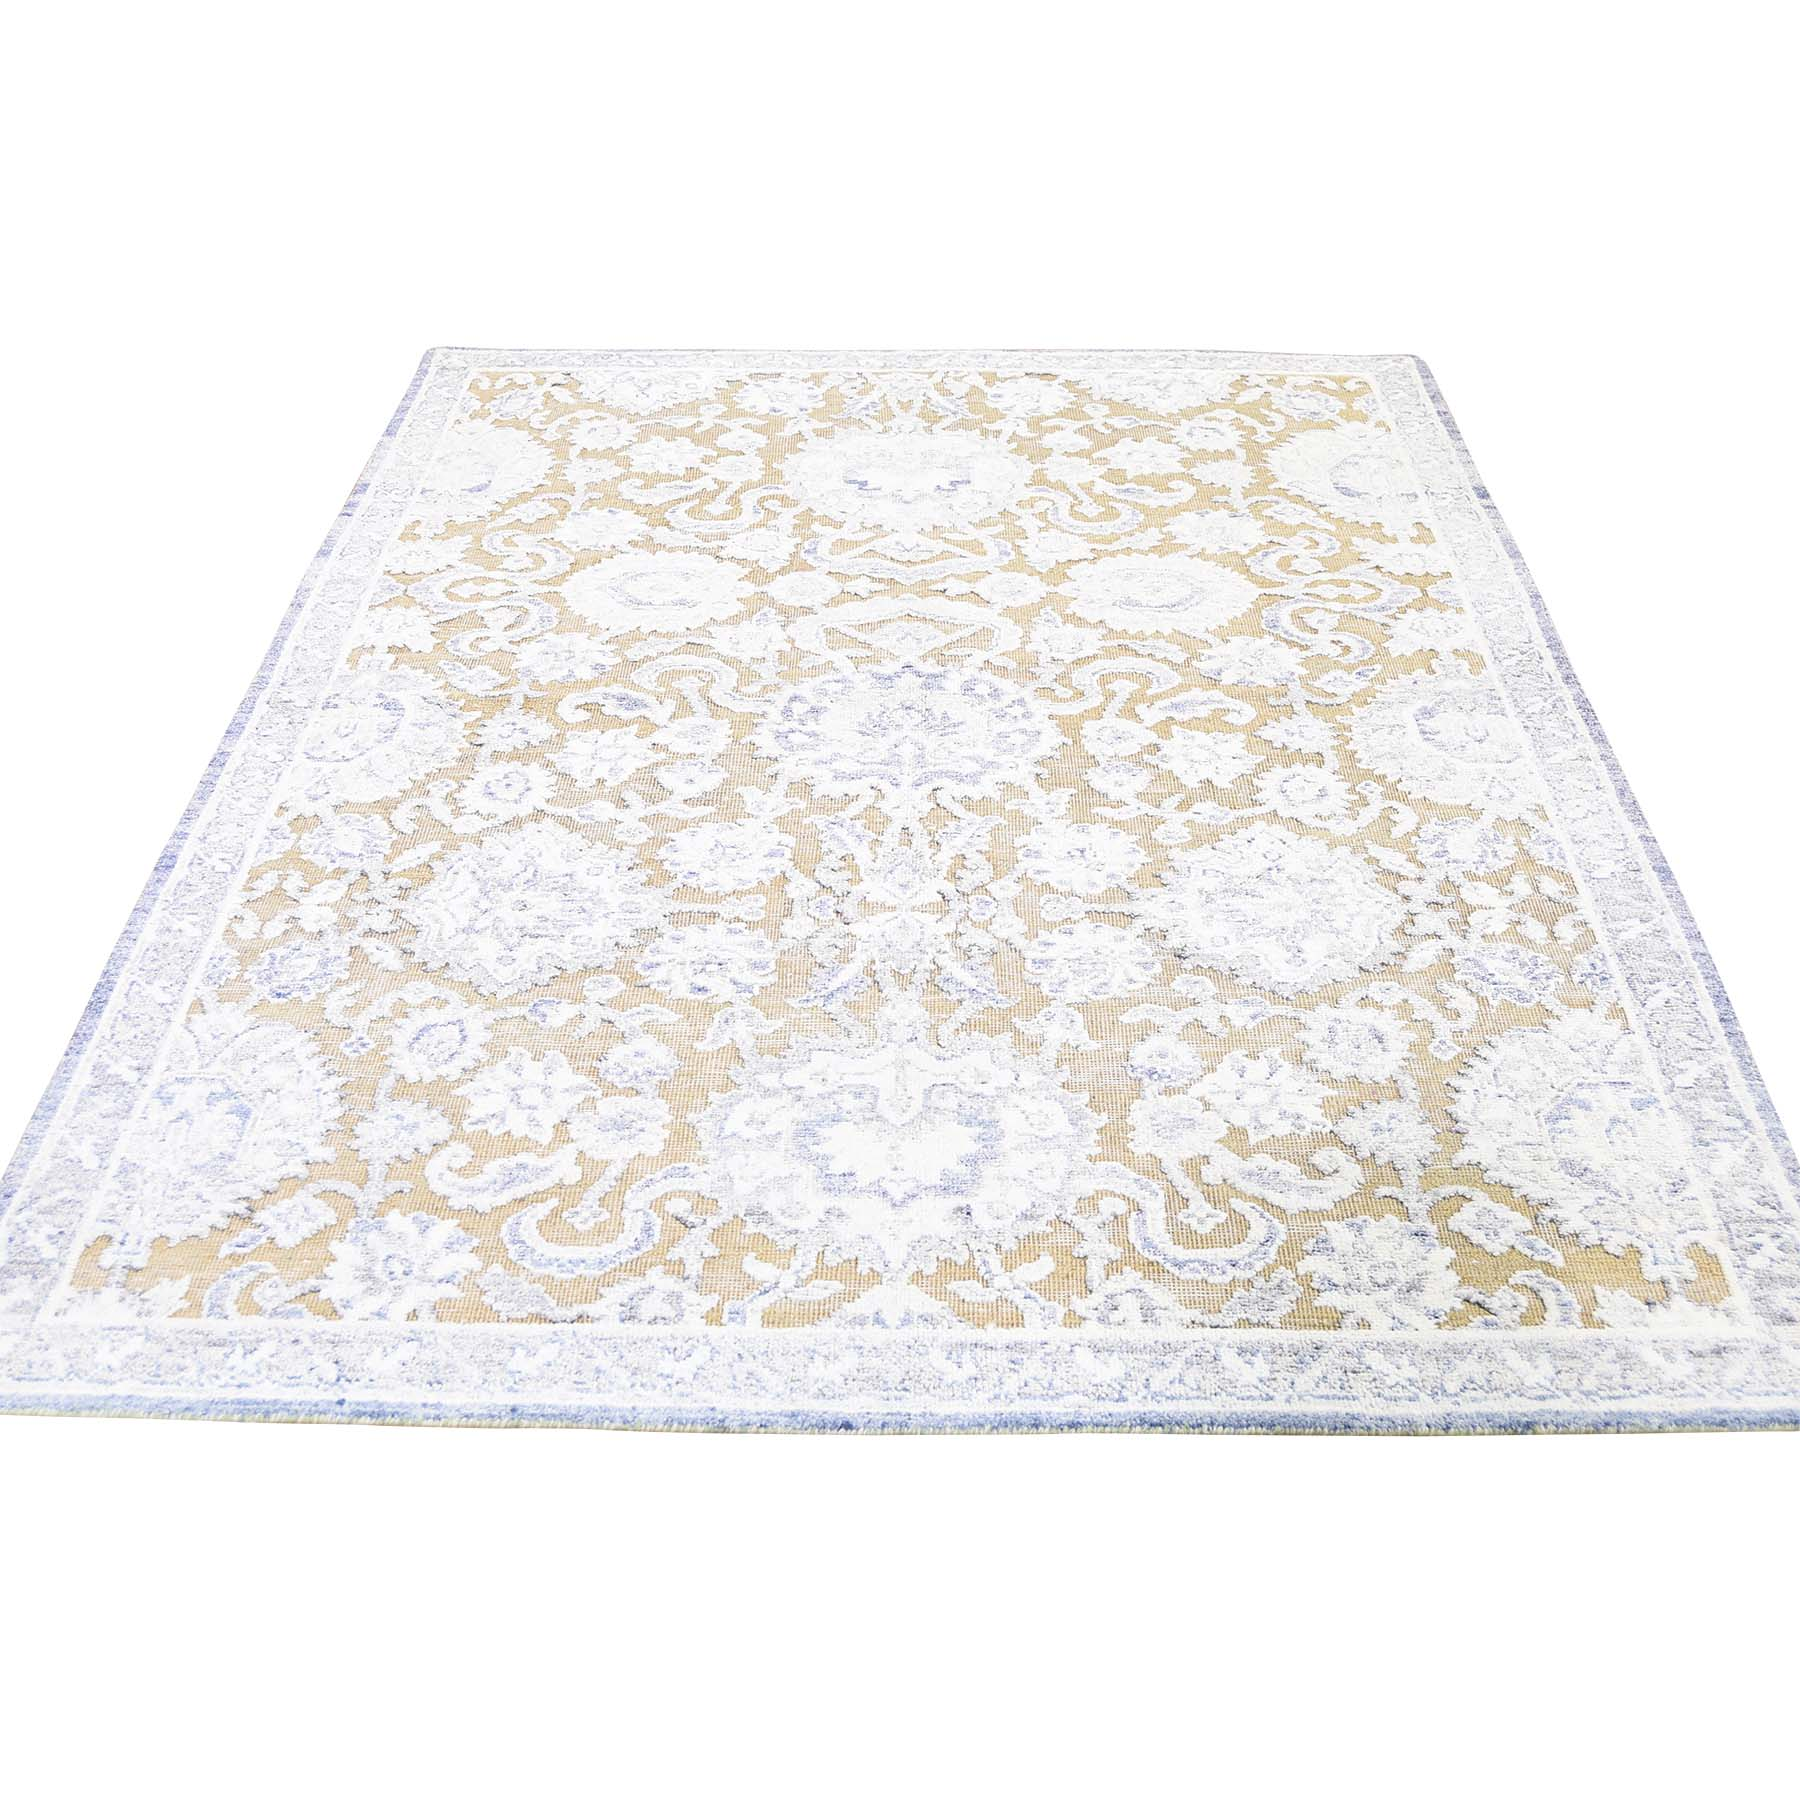 """4'10""""X7' Silk With Textured Wool Hand Knotted Oriental Rug moadd9bc"""